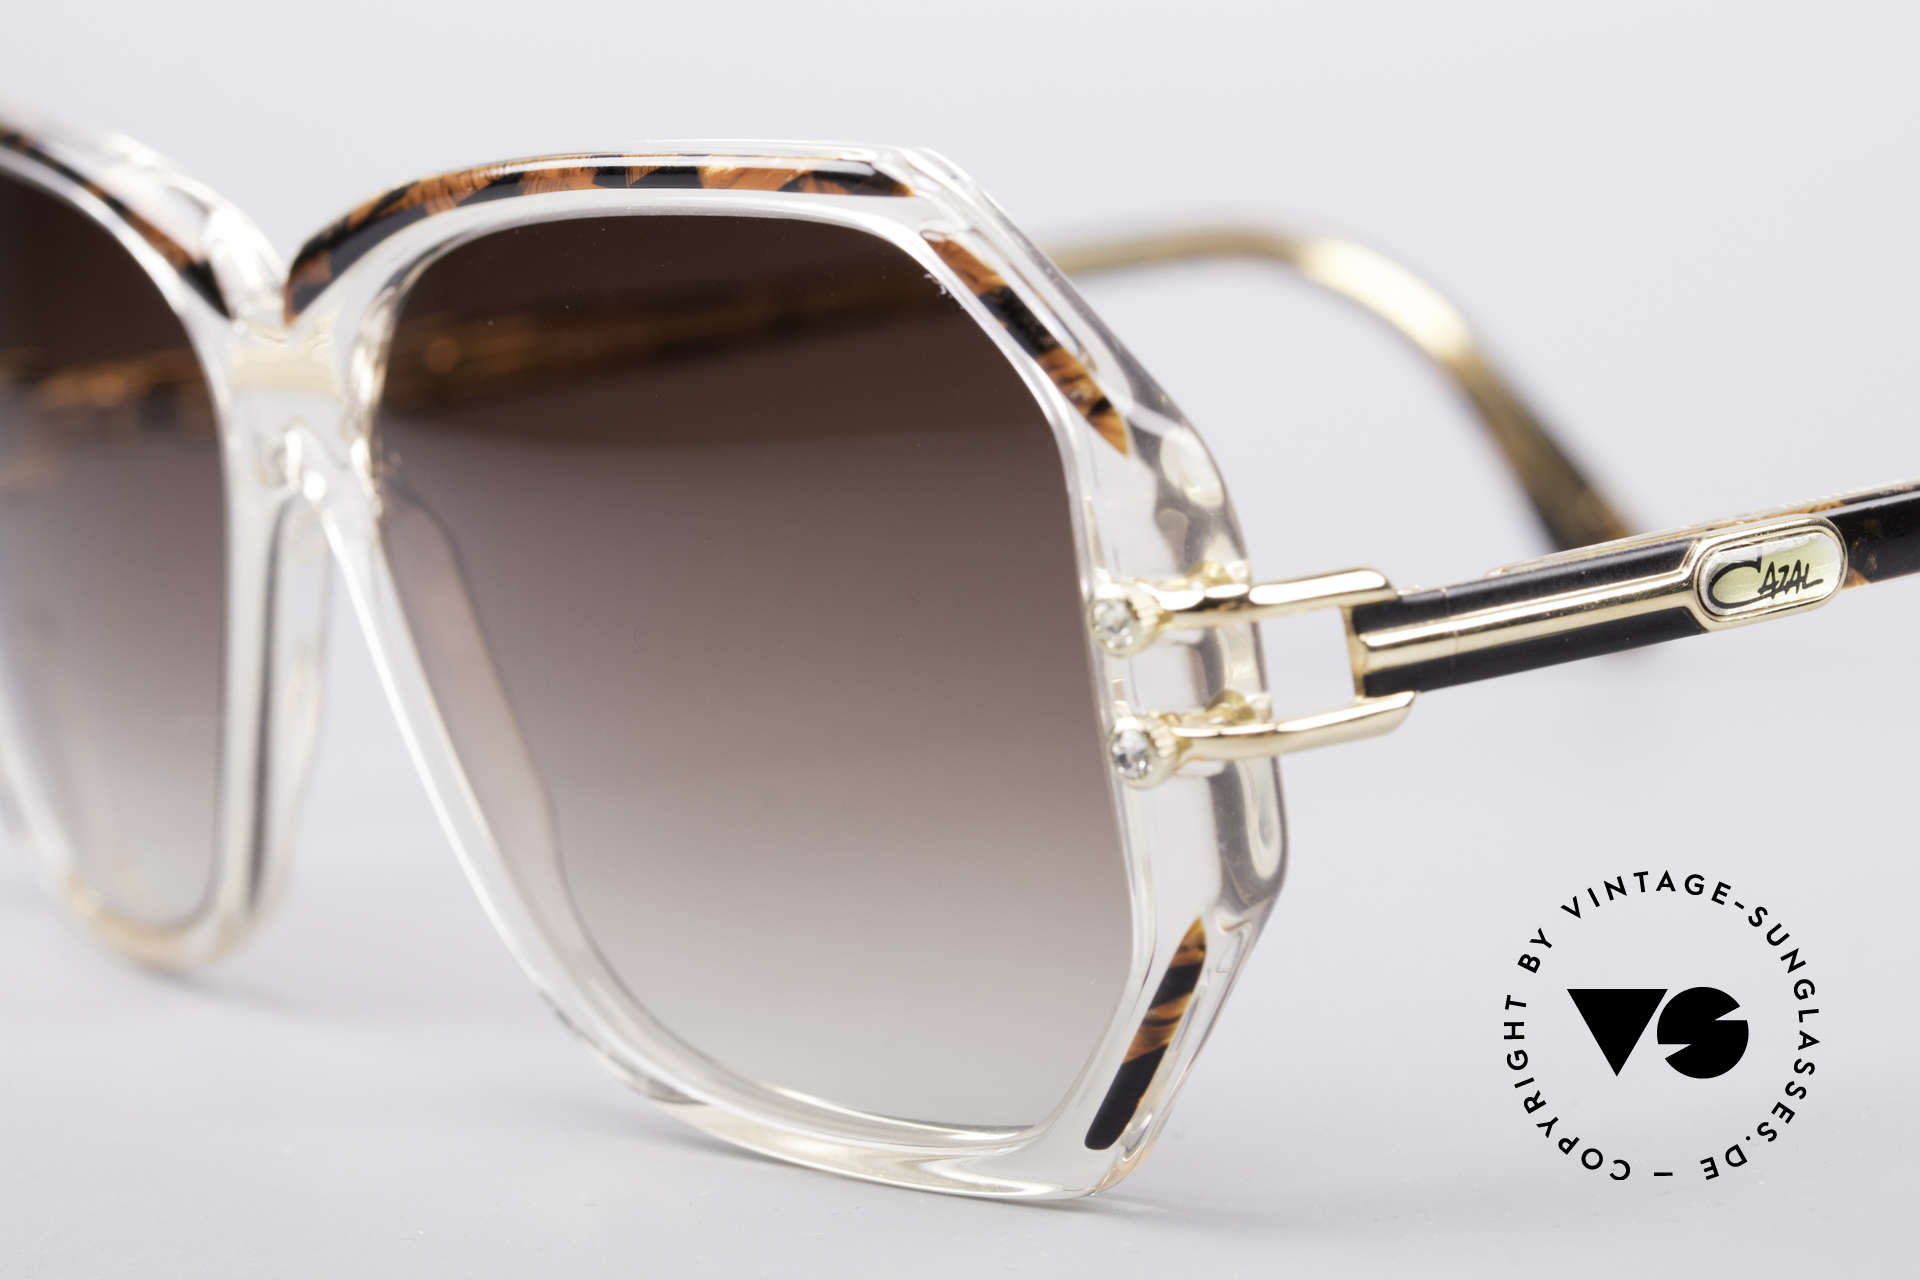 Cazal 169 Vintage Designer Shades, with some tiny rhinestones as ornamental screws, Made for Women